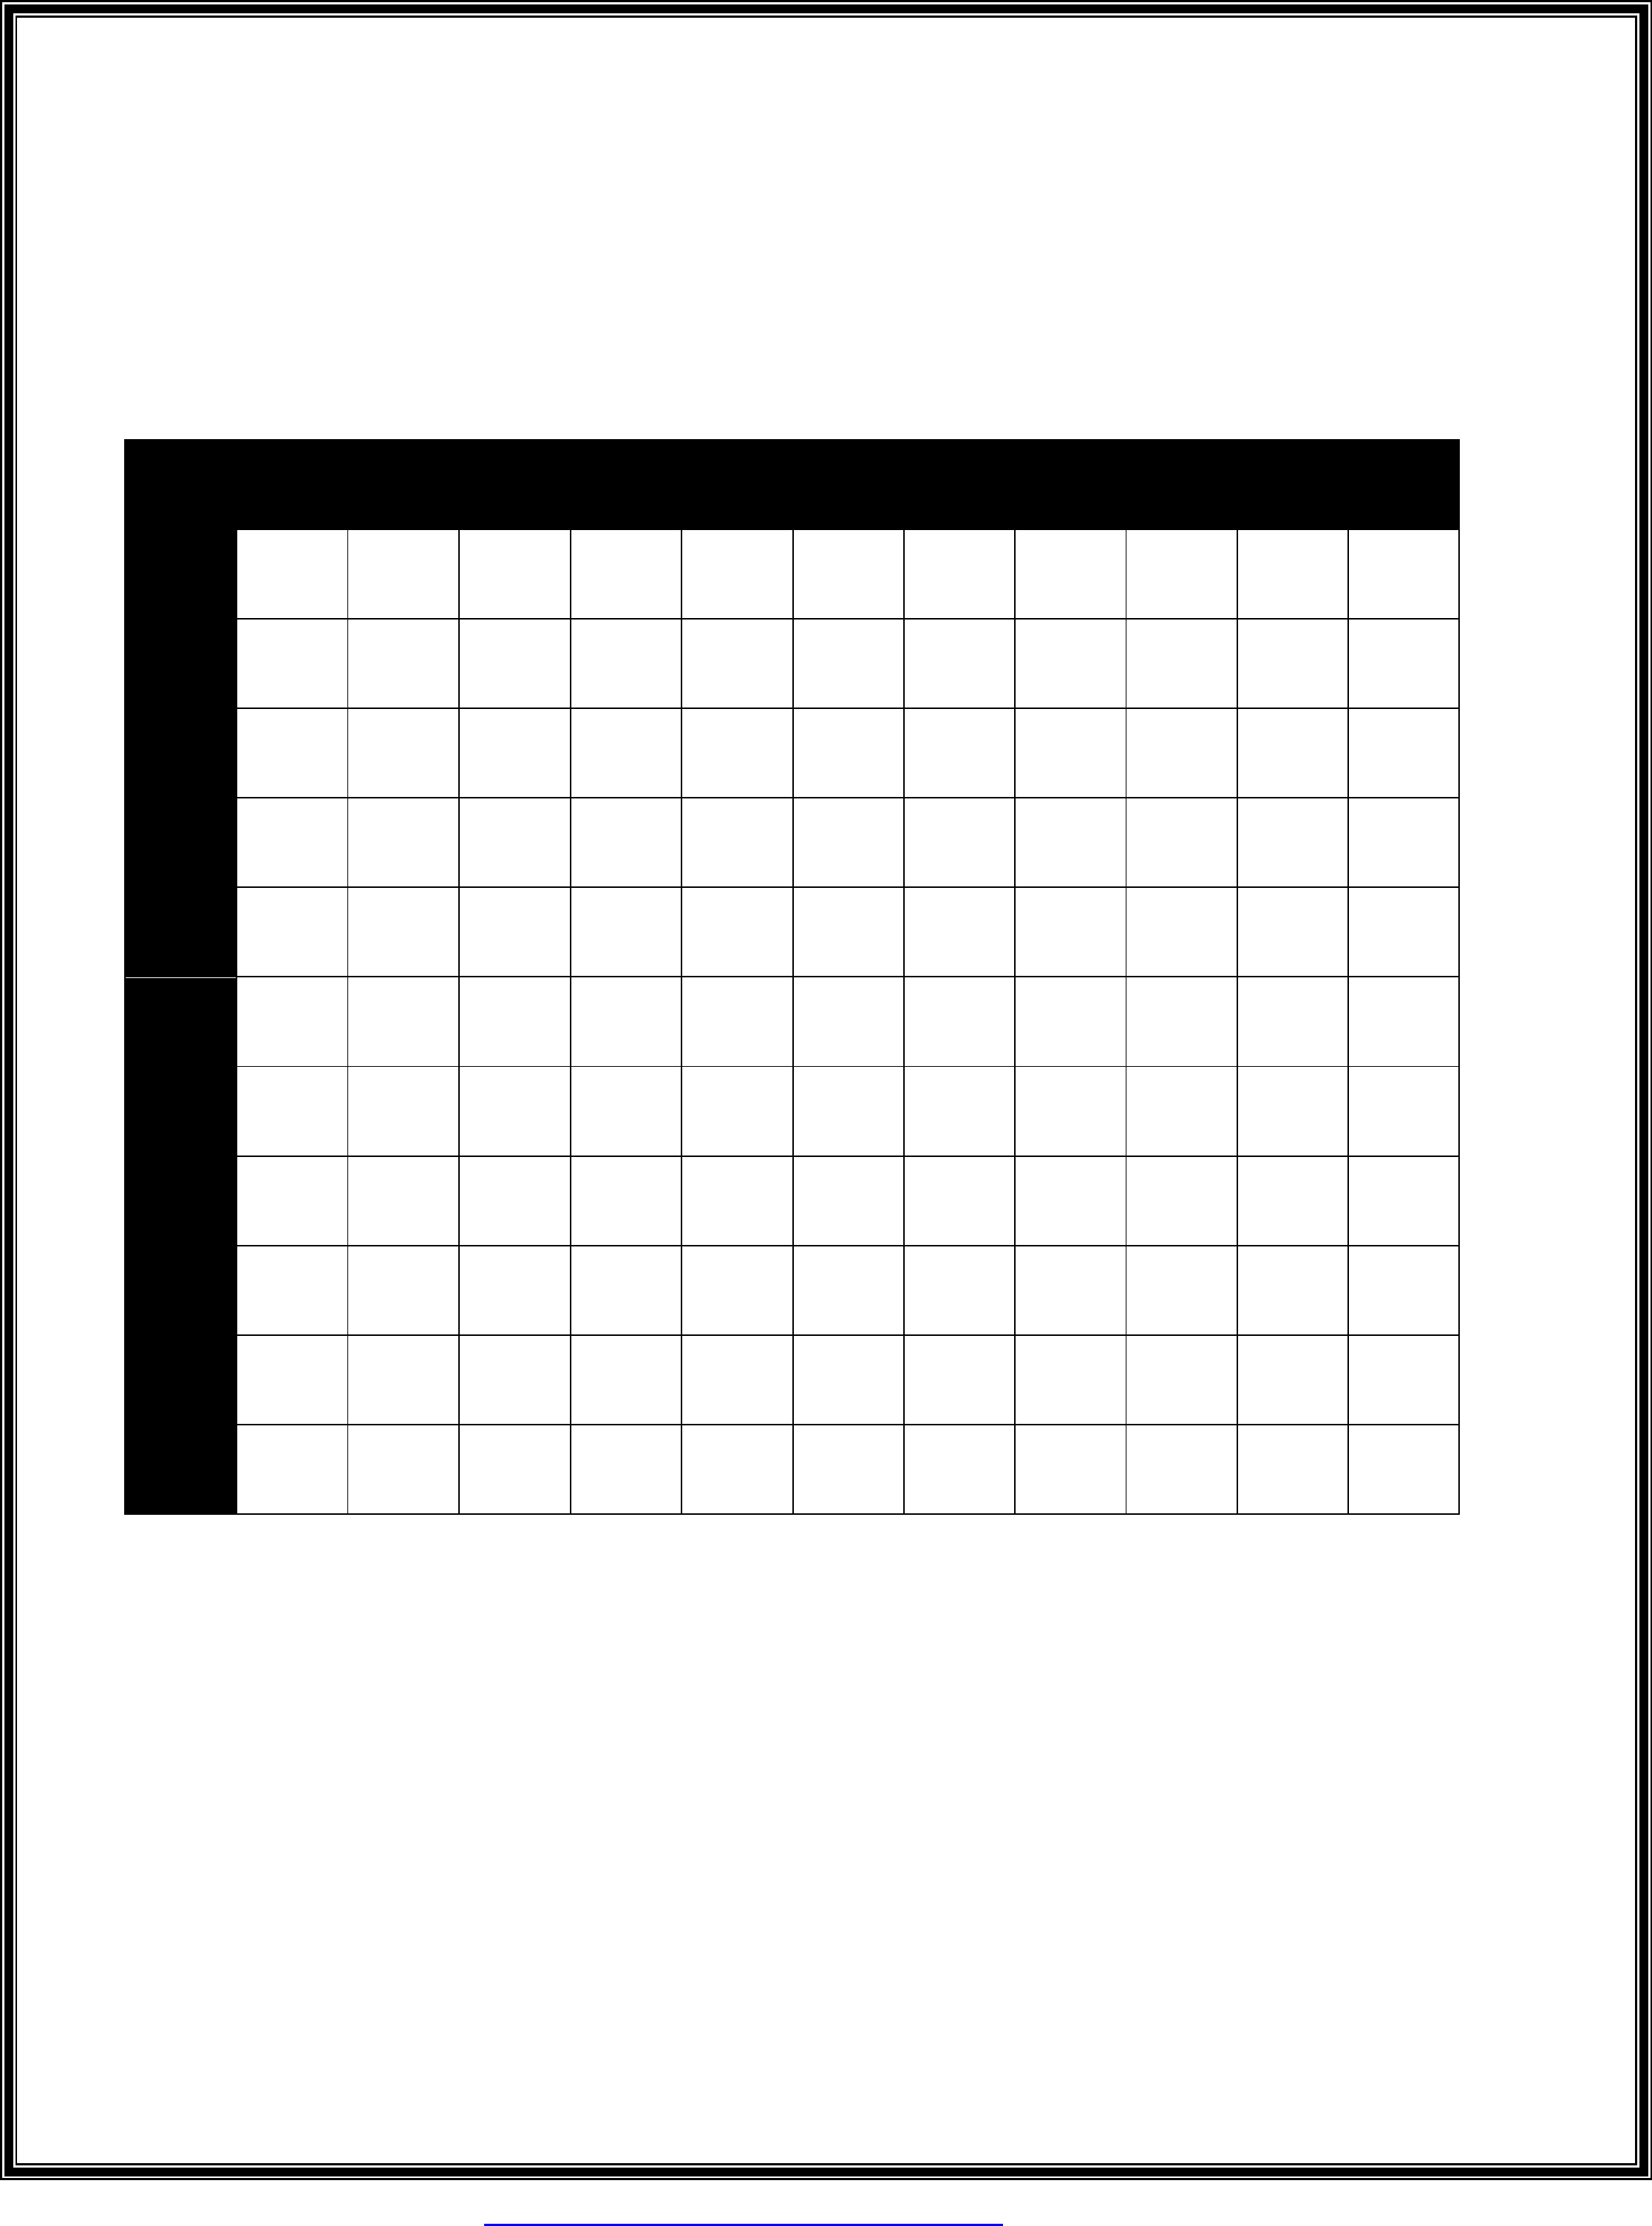 Blank Multiplication Chart With Answers Free Download